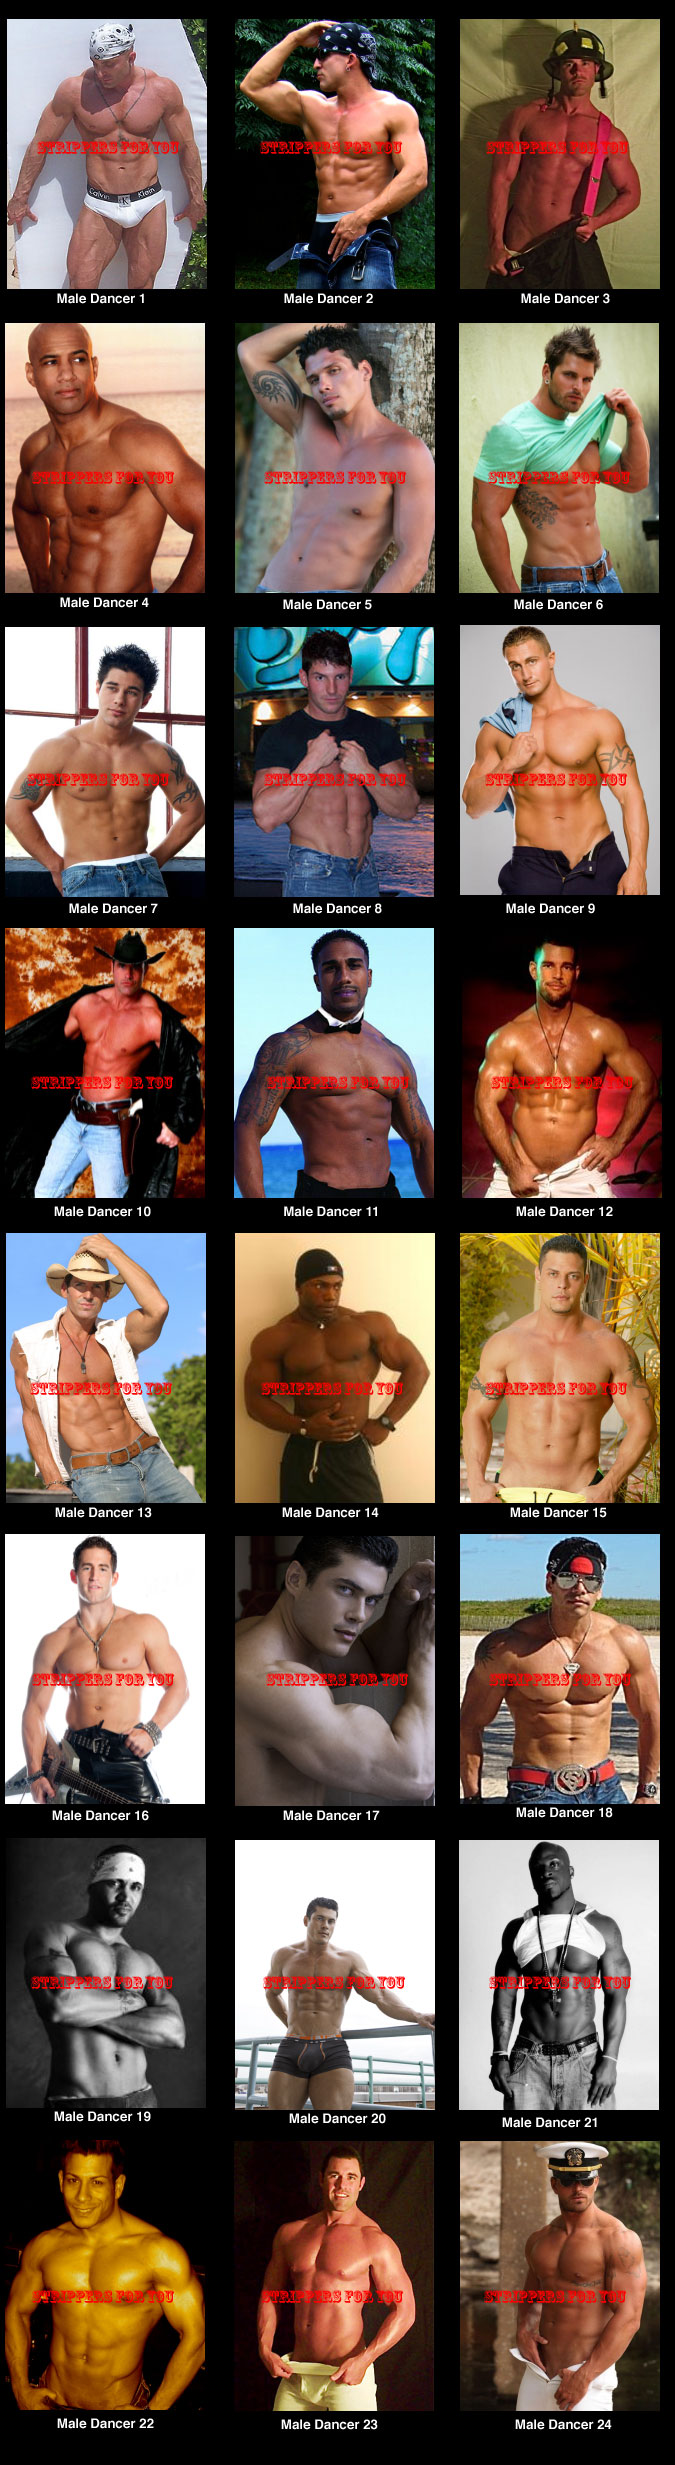 Tulsa male strippers